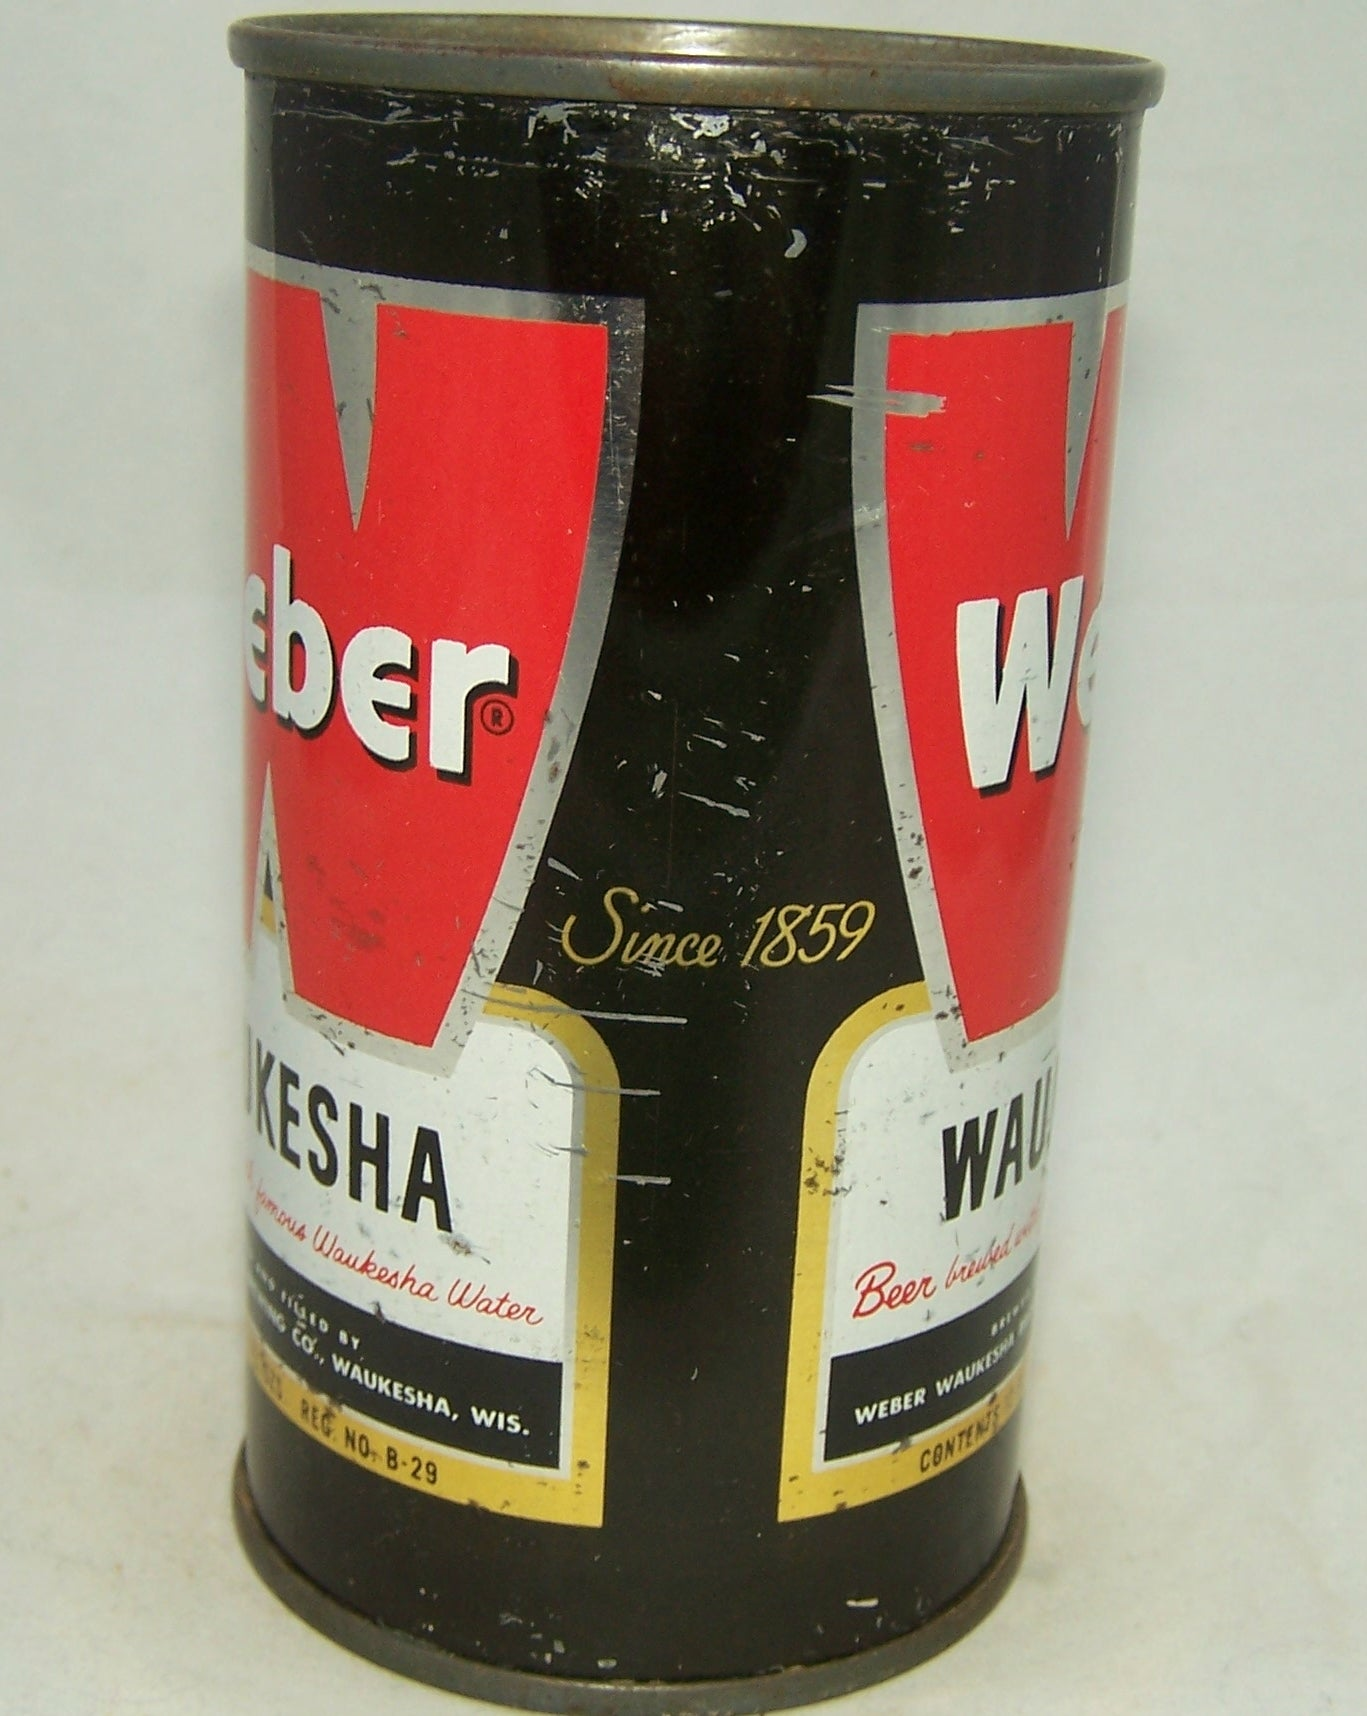 Weber Waukesha Beer, USBC 144-29, Grade 1- Sold on 07/27/18